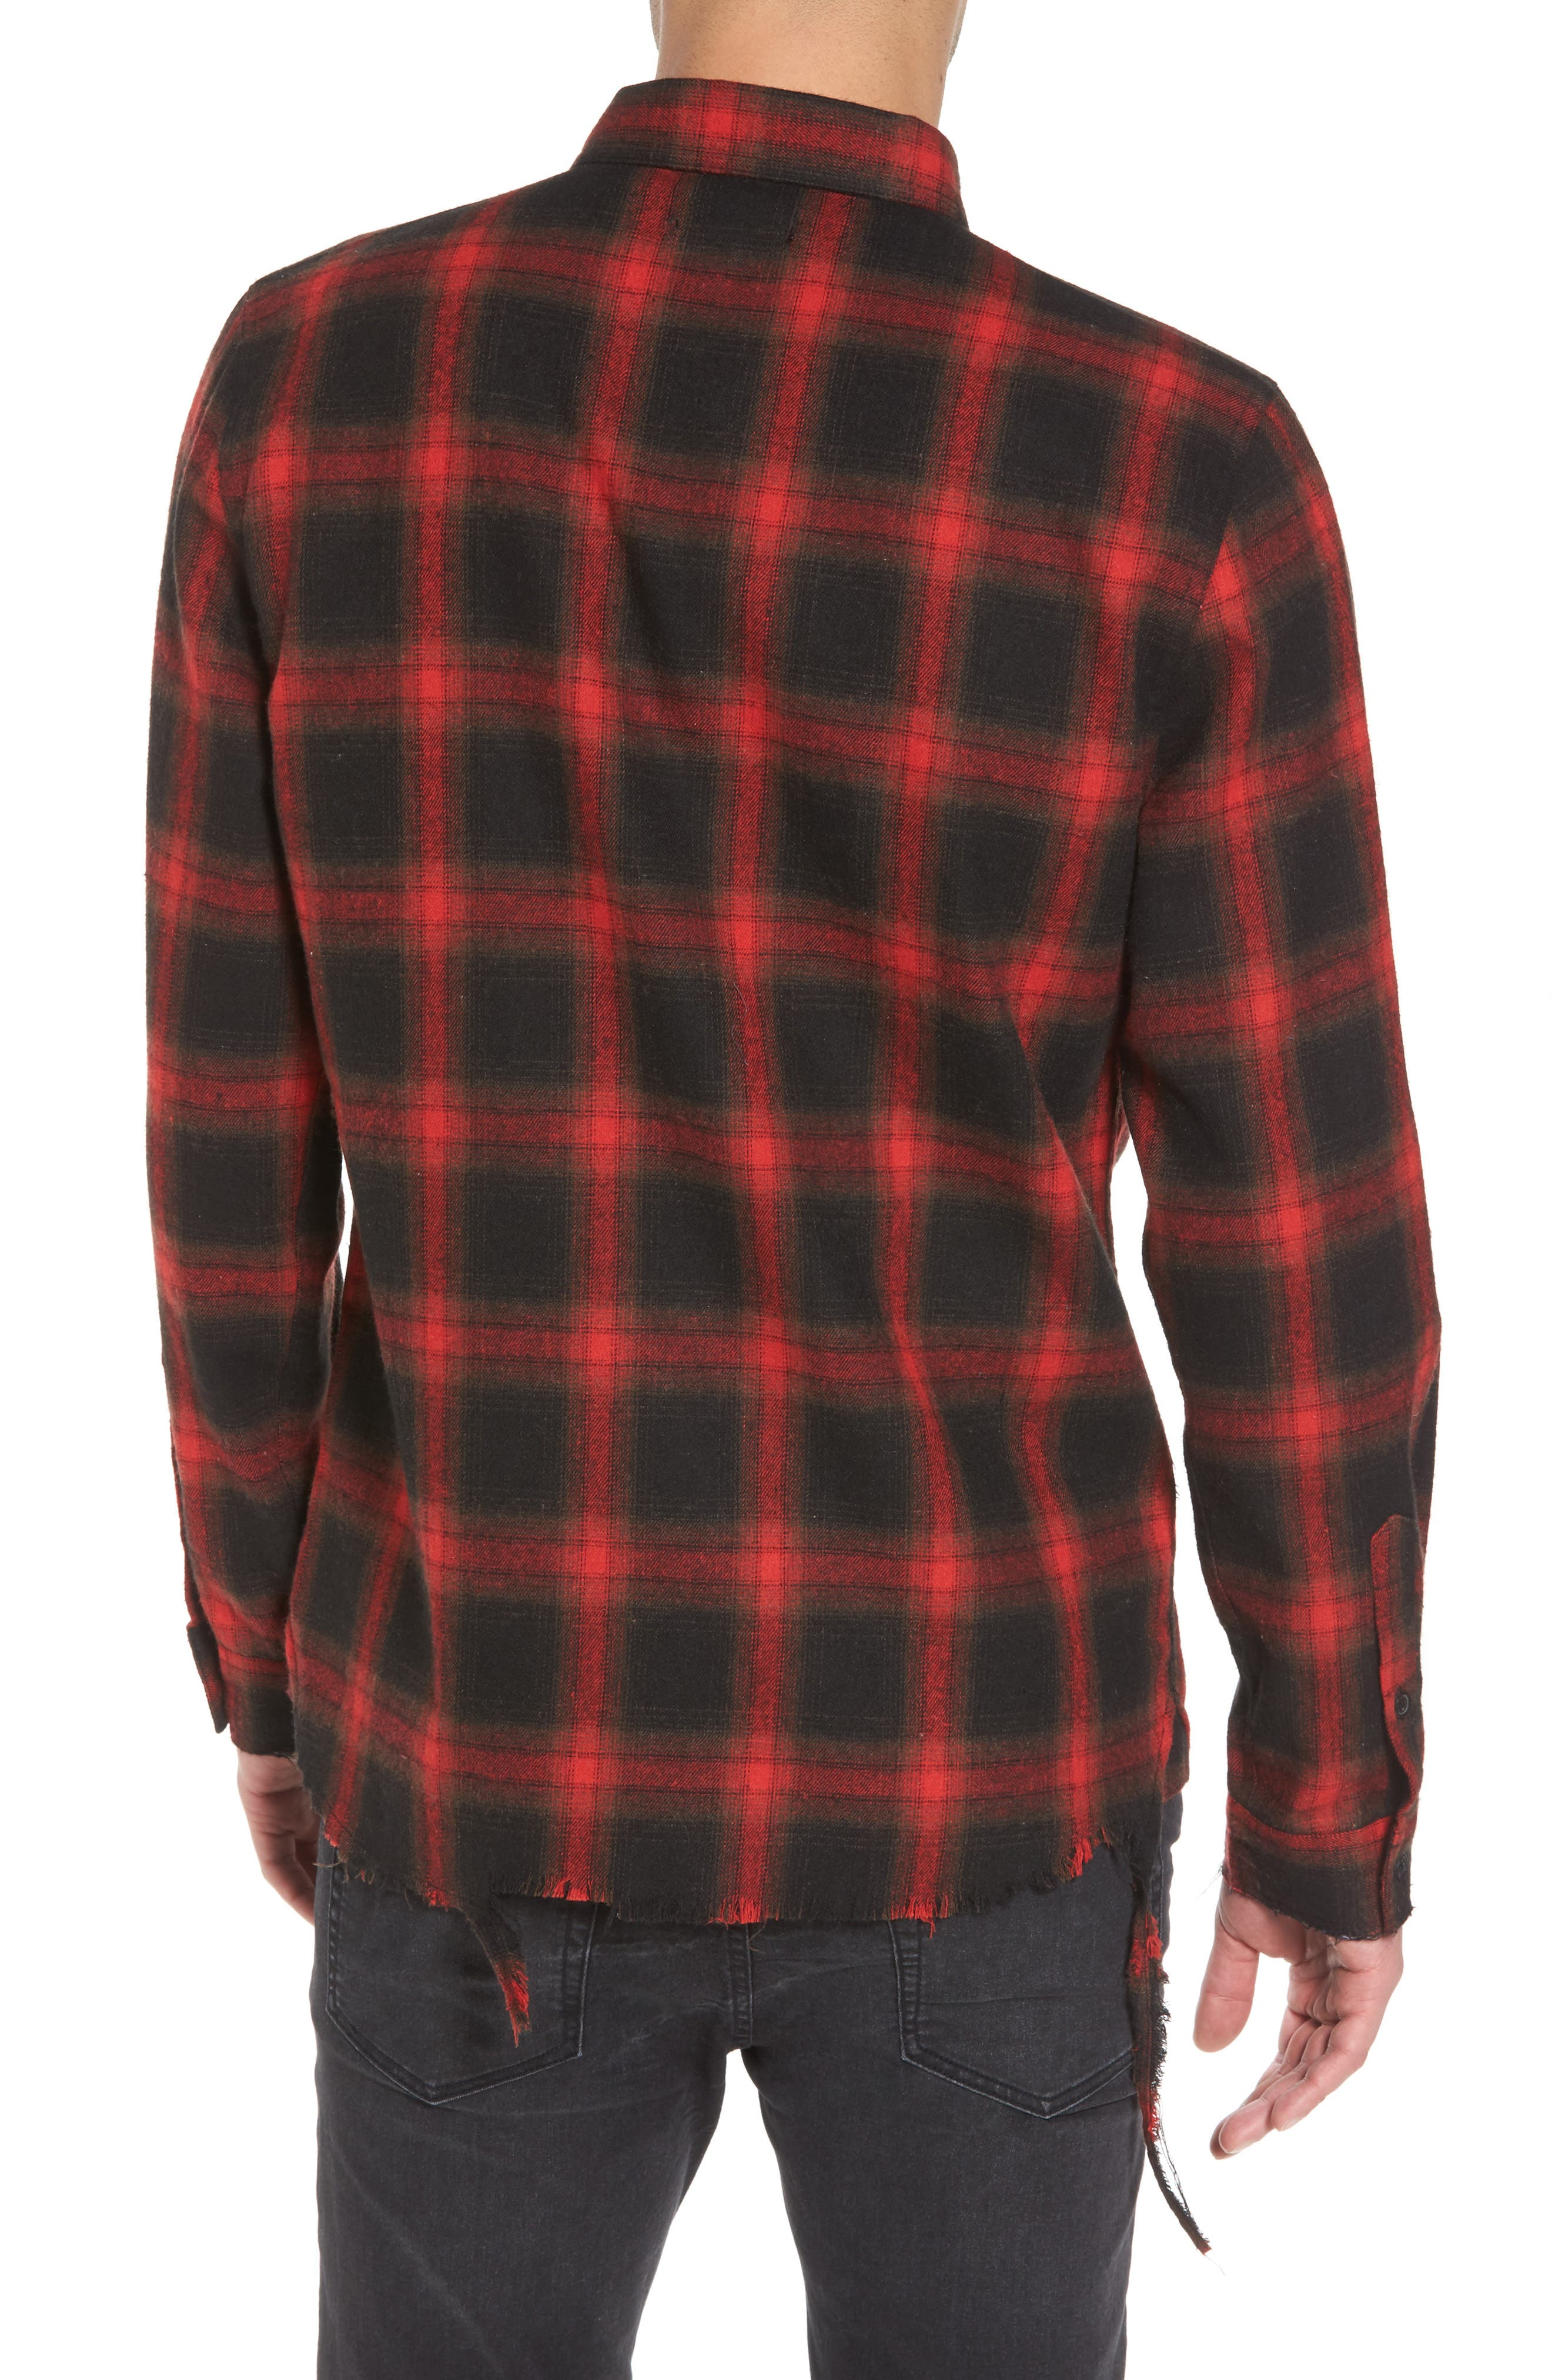 Shredded Plaid Flannel Shirt,                             Alternate thumbnail 2, color,                             Black Rock Red Ombre Check